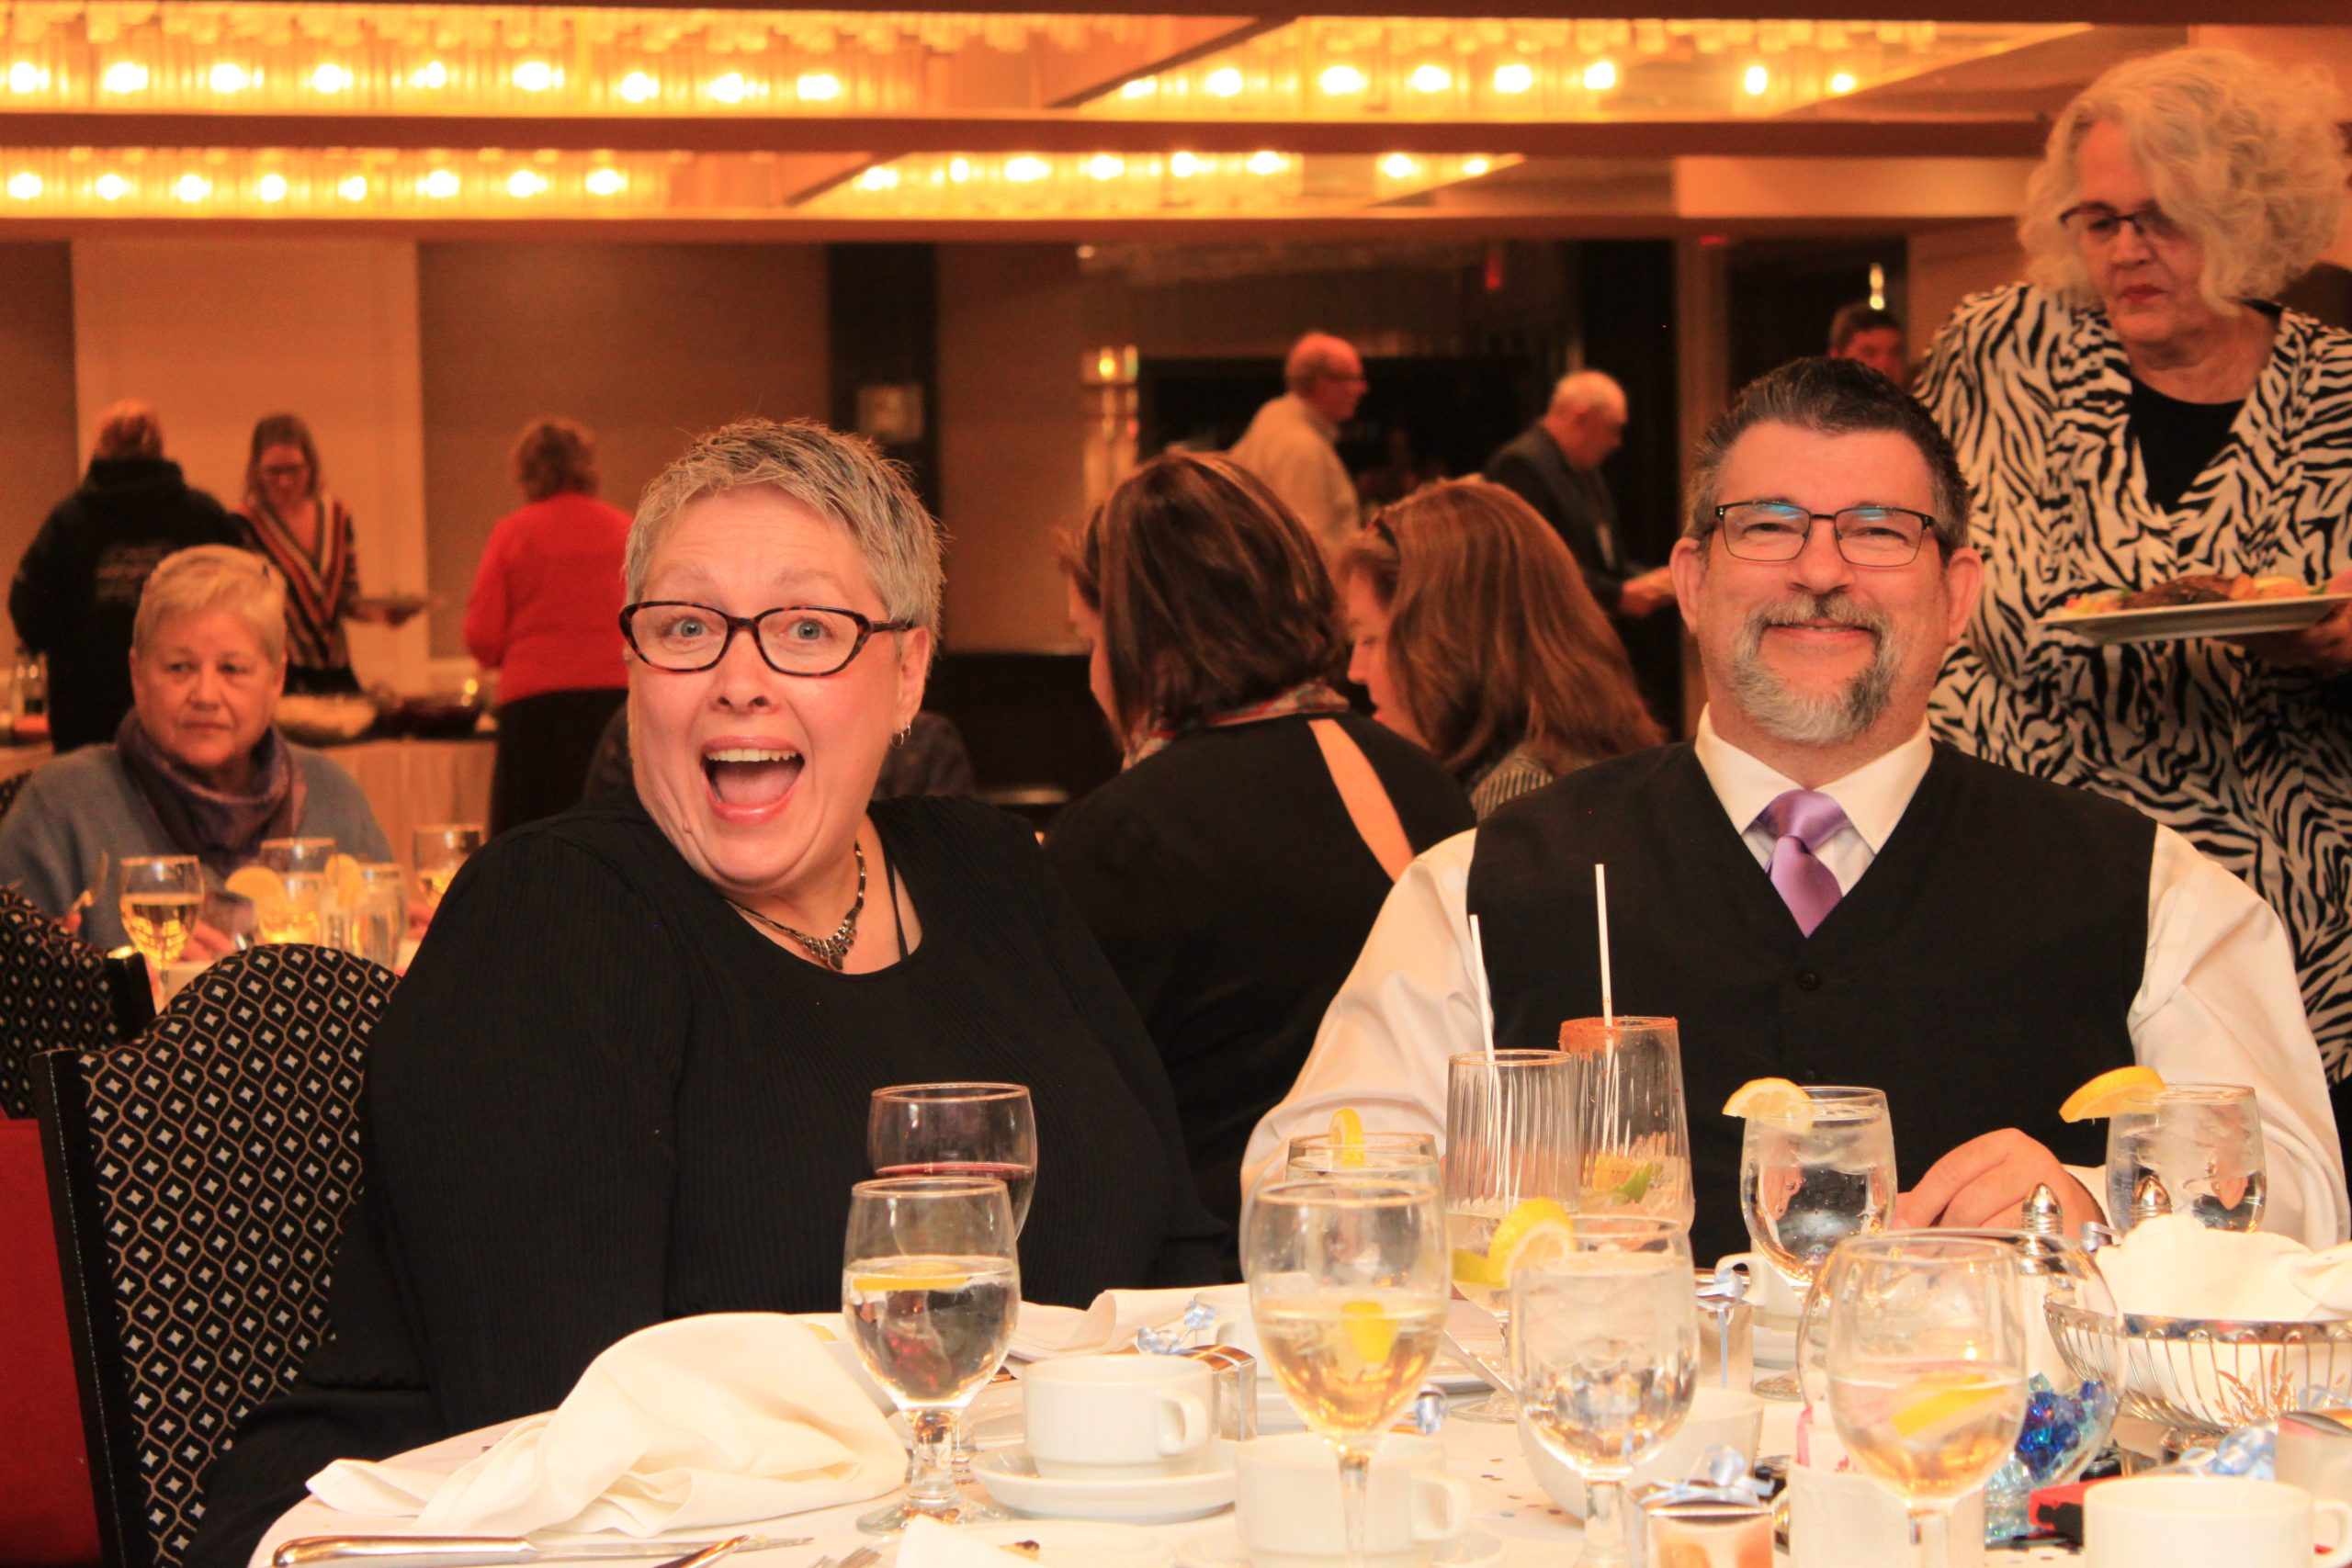 Lisa and John. Guests at Gala